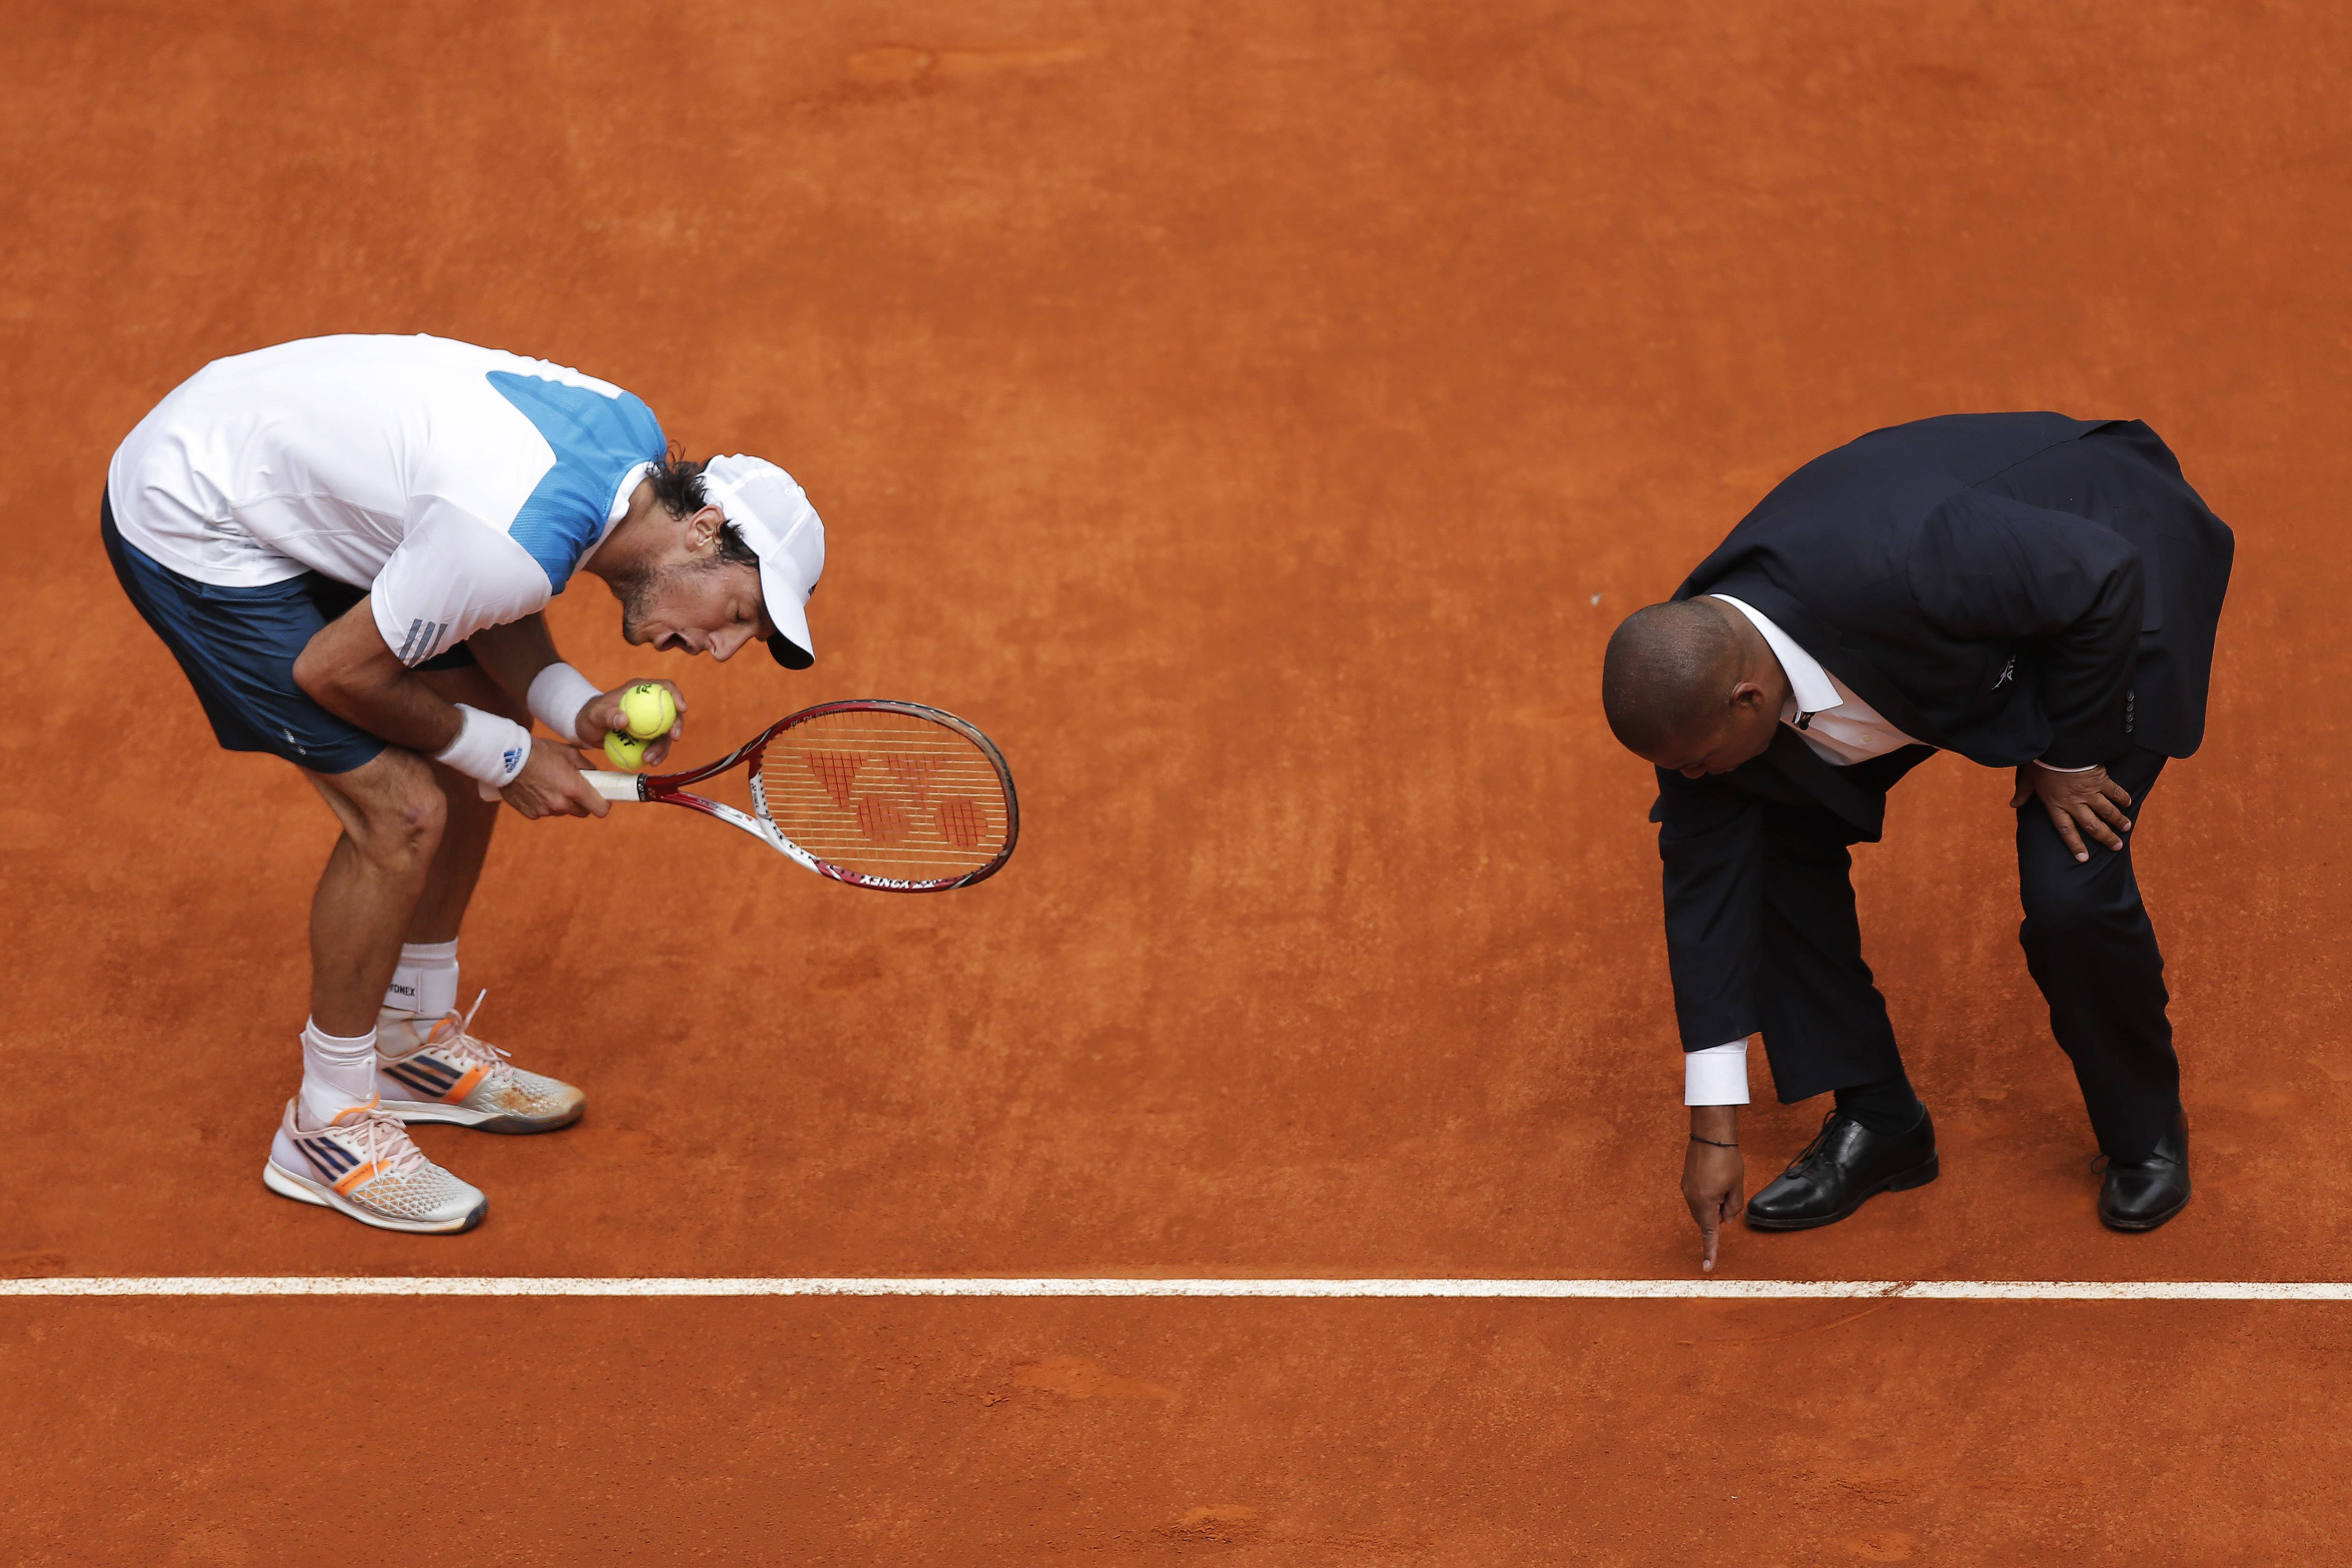 Juan Monaco from Argentina, left, discusses a point with umpire Carlos Bernardes during a Madrid Open tennis tournament match against Rafael Nadal from Spain in Madrid, Spain, Wednesday, May 7, 2014.